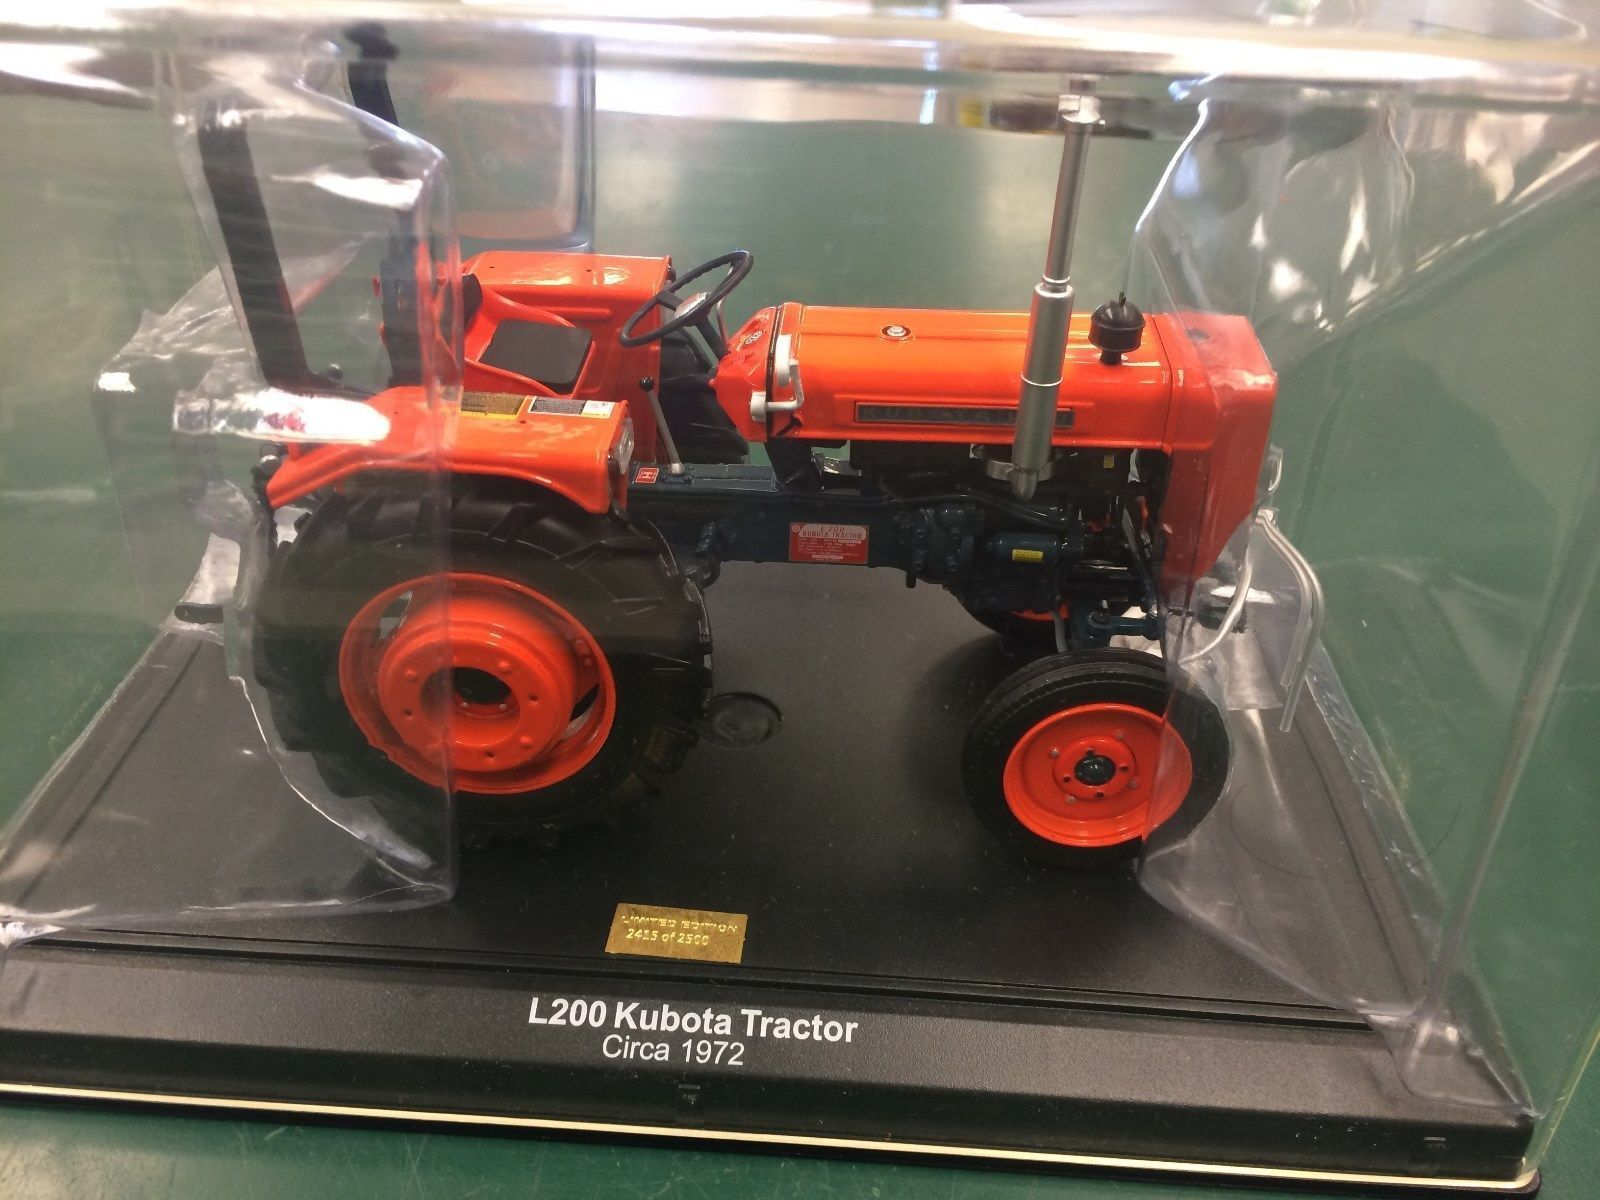 Rare Kubota L200 1 16 precision detail Collectors limited edition tractor 1 2500